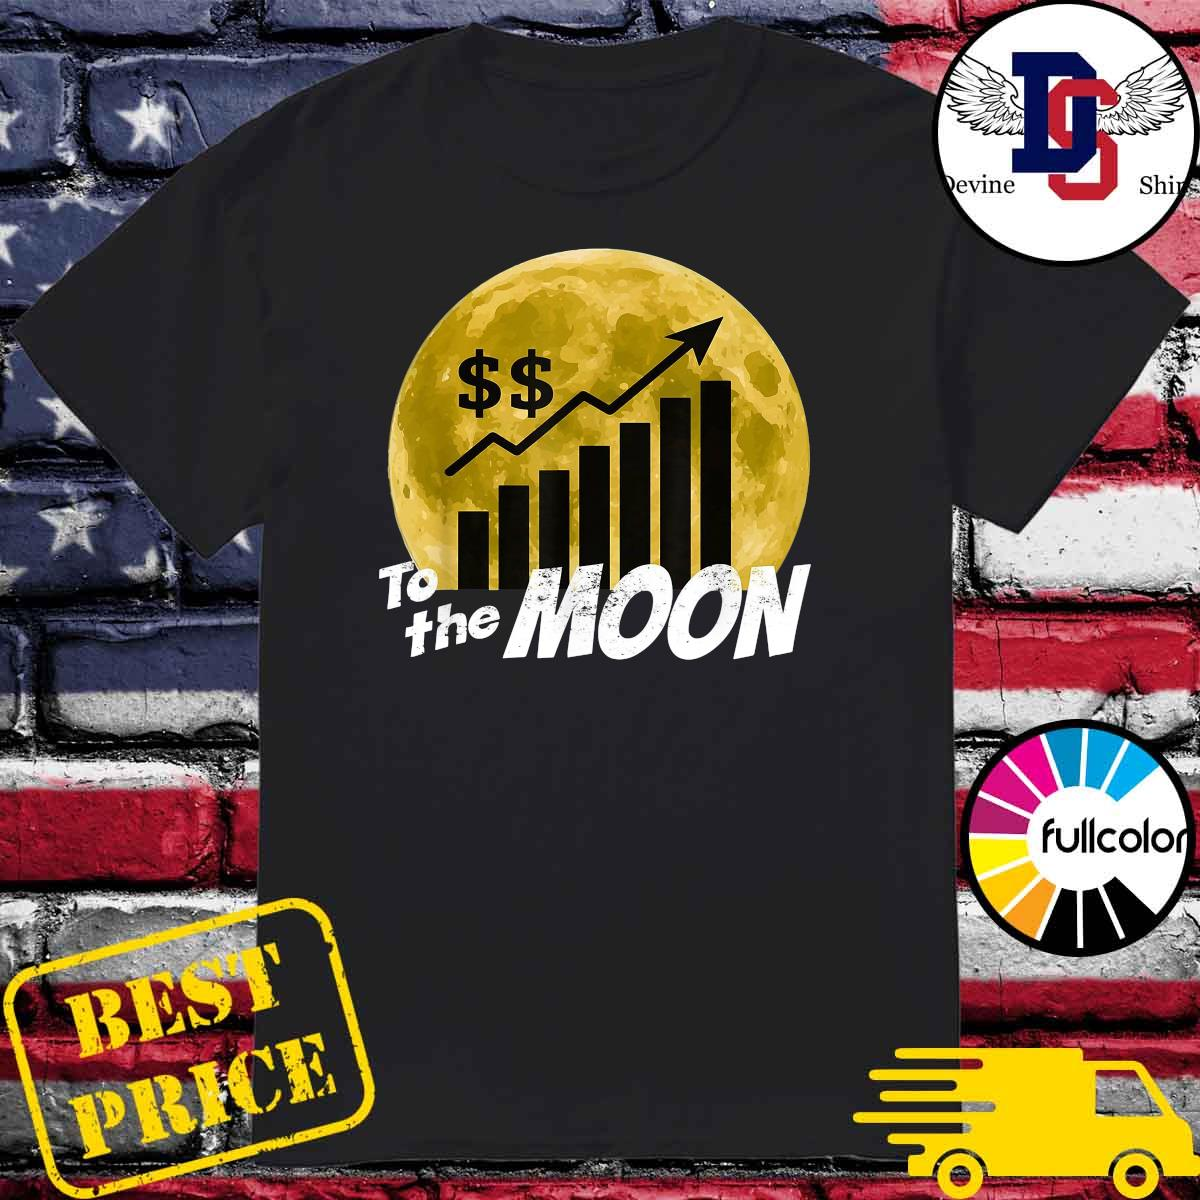 $GME Game To The Moon 2021 Shirt